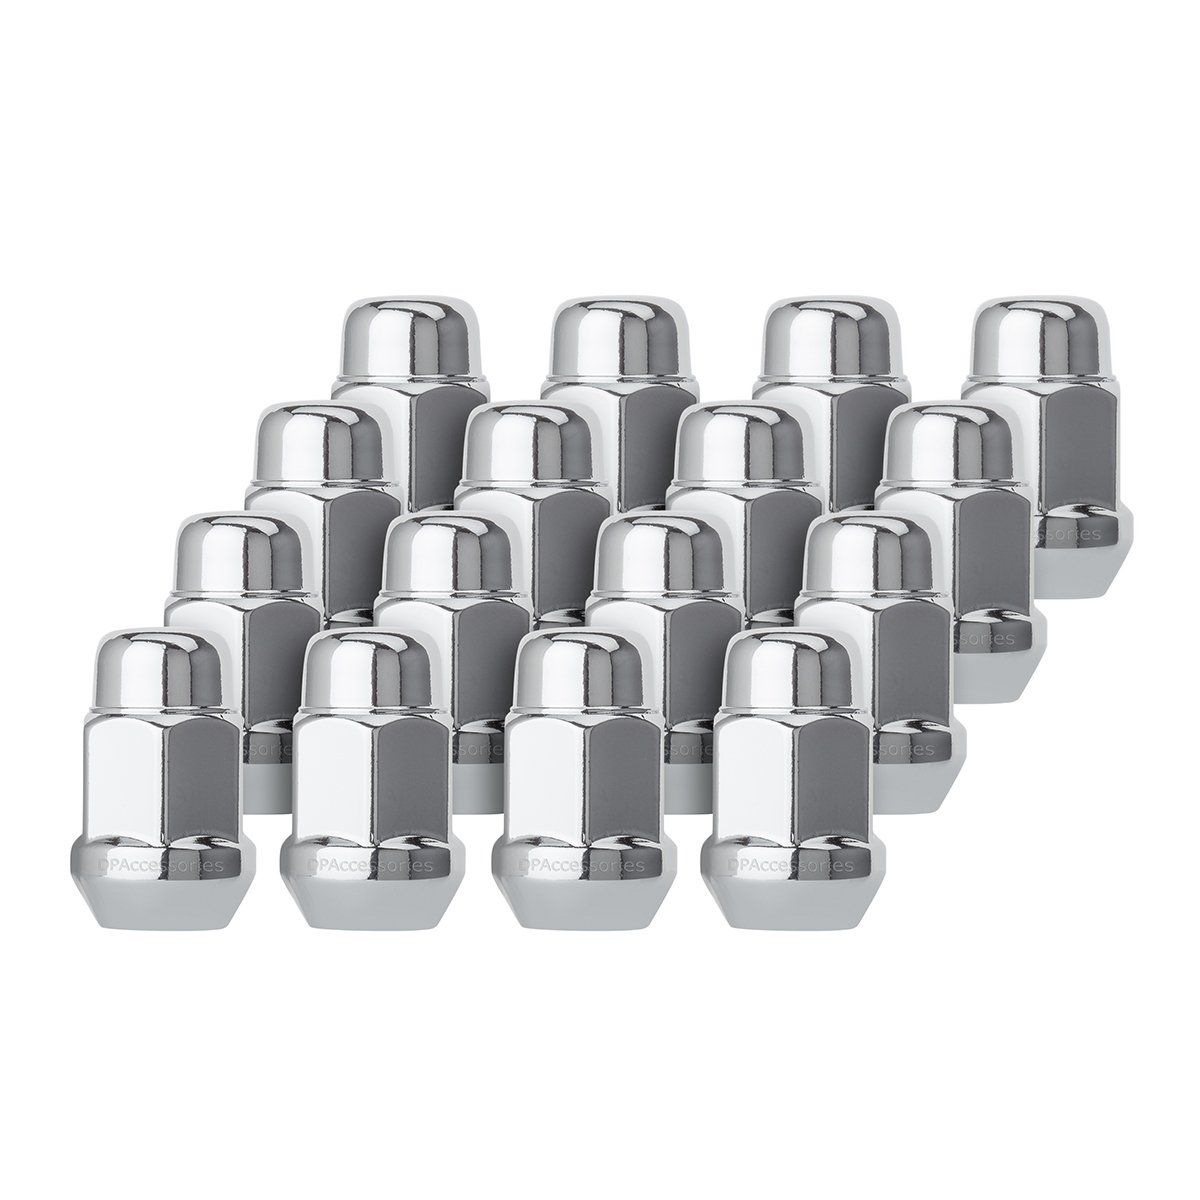 DPAccessories D3112-HT-2305/16 16 Chrome 1/2-20 Closed End Bulge Acorn Lug Nuts - Cone Seat - 3/4'' Hex Wheel Lug Nut